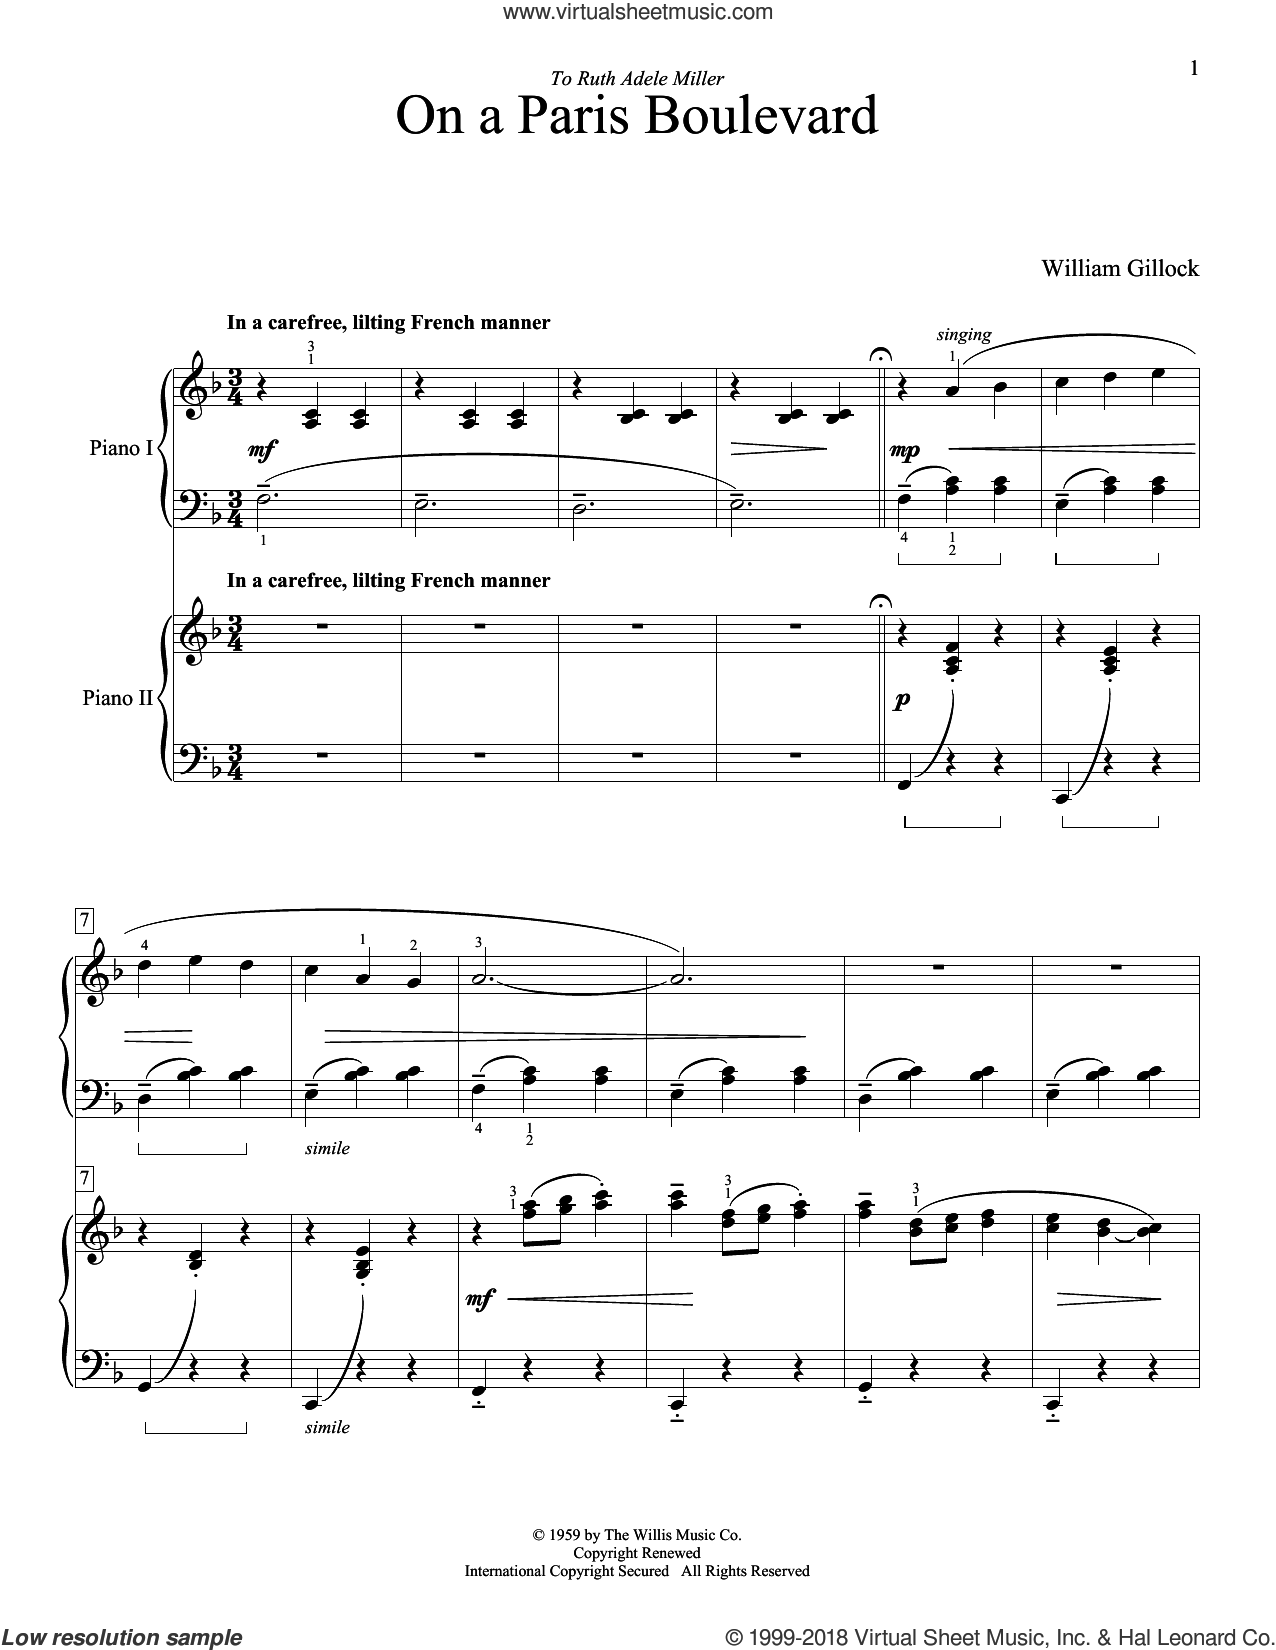 On A Paris Boulevard sheet music for piano four hands by William Gillock, intermediate skill level